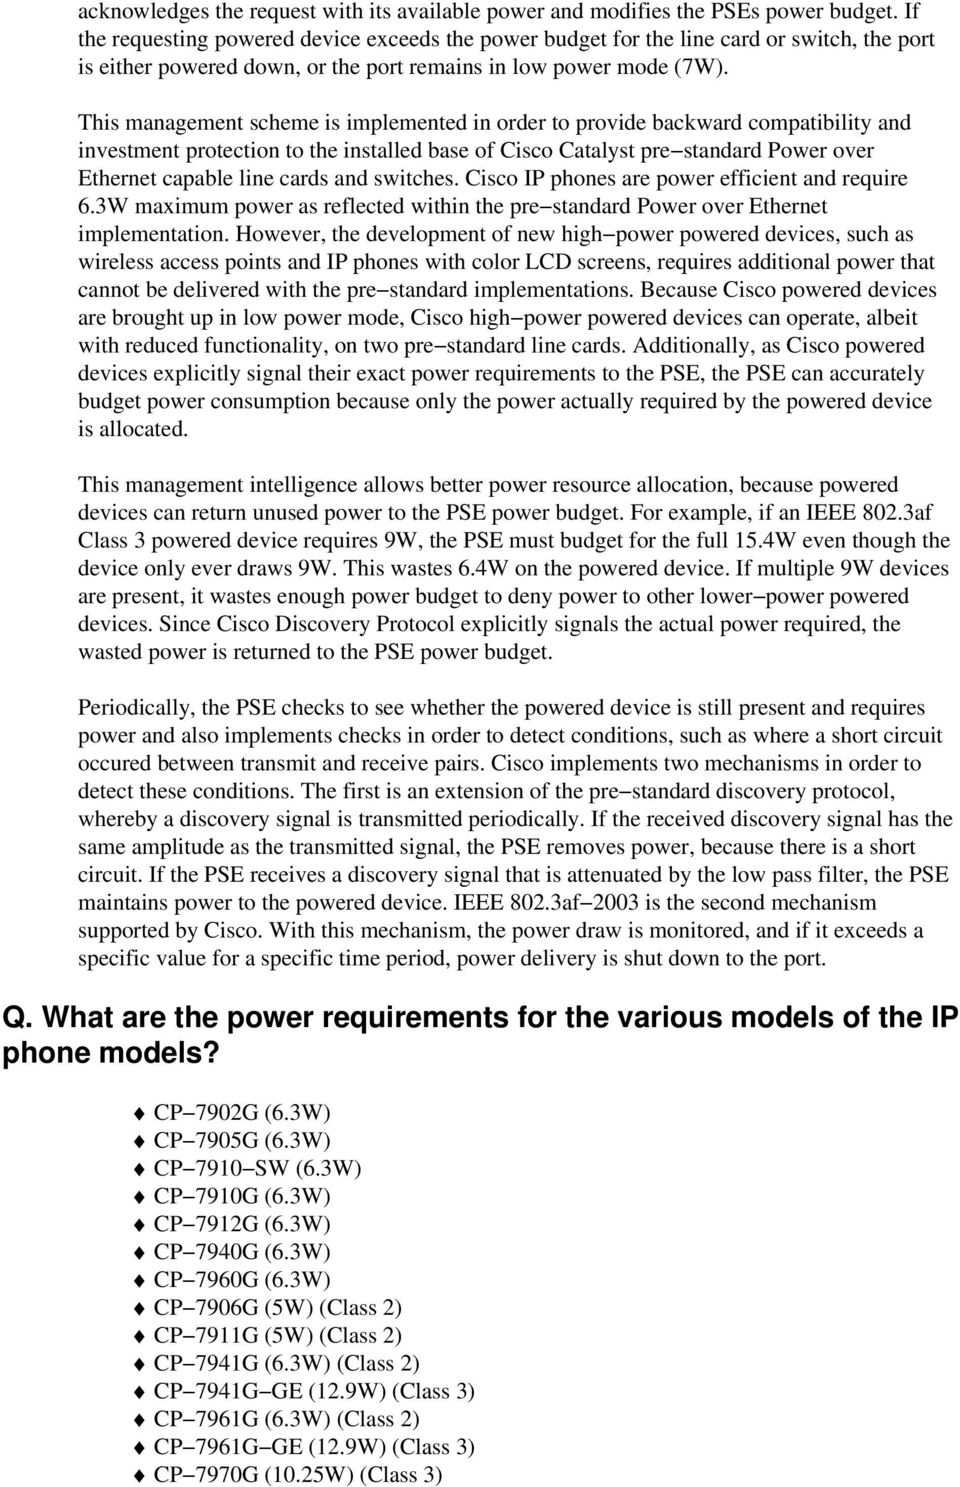 Power Over Ethernet Poe Requirements Faq Pdf Poweroverethernet On Industrialbased Networking Fig 2 This Management Scheme Is Implemented In Order To Provide Backward Compatibility And Investment Protection The